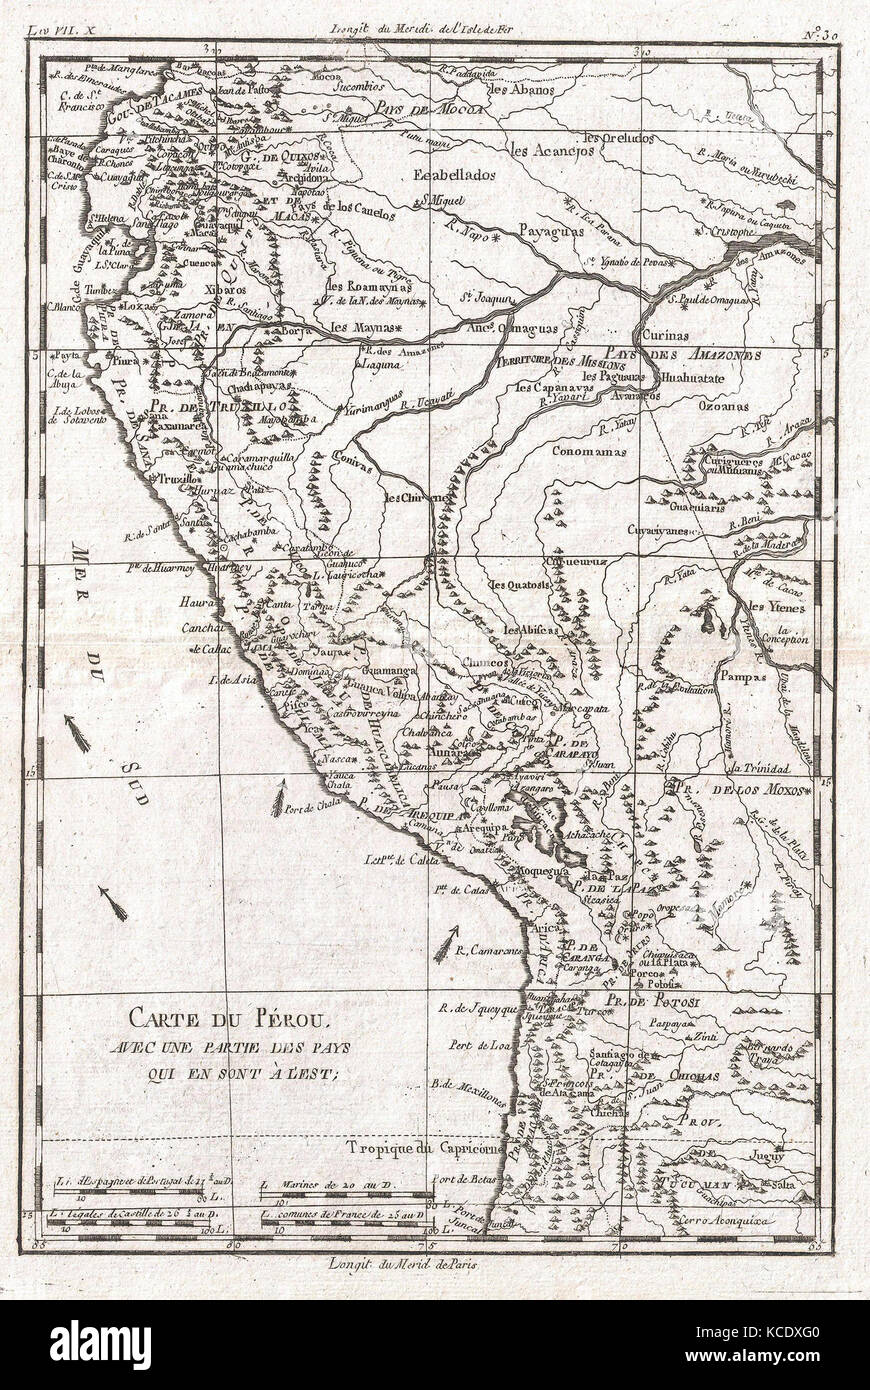 1780, Raynal and Bonne Map of Peru, Rigobert Bonne 1727 – 1794 - Stock Image